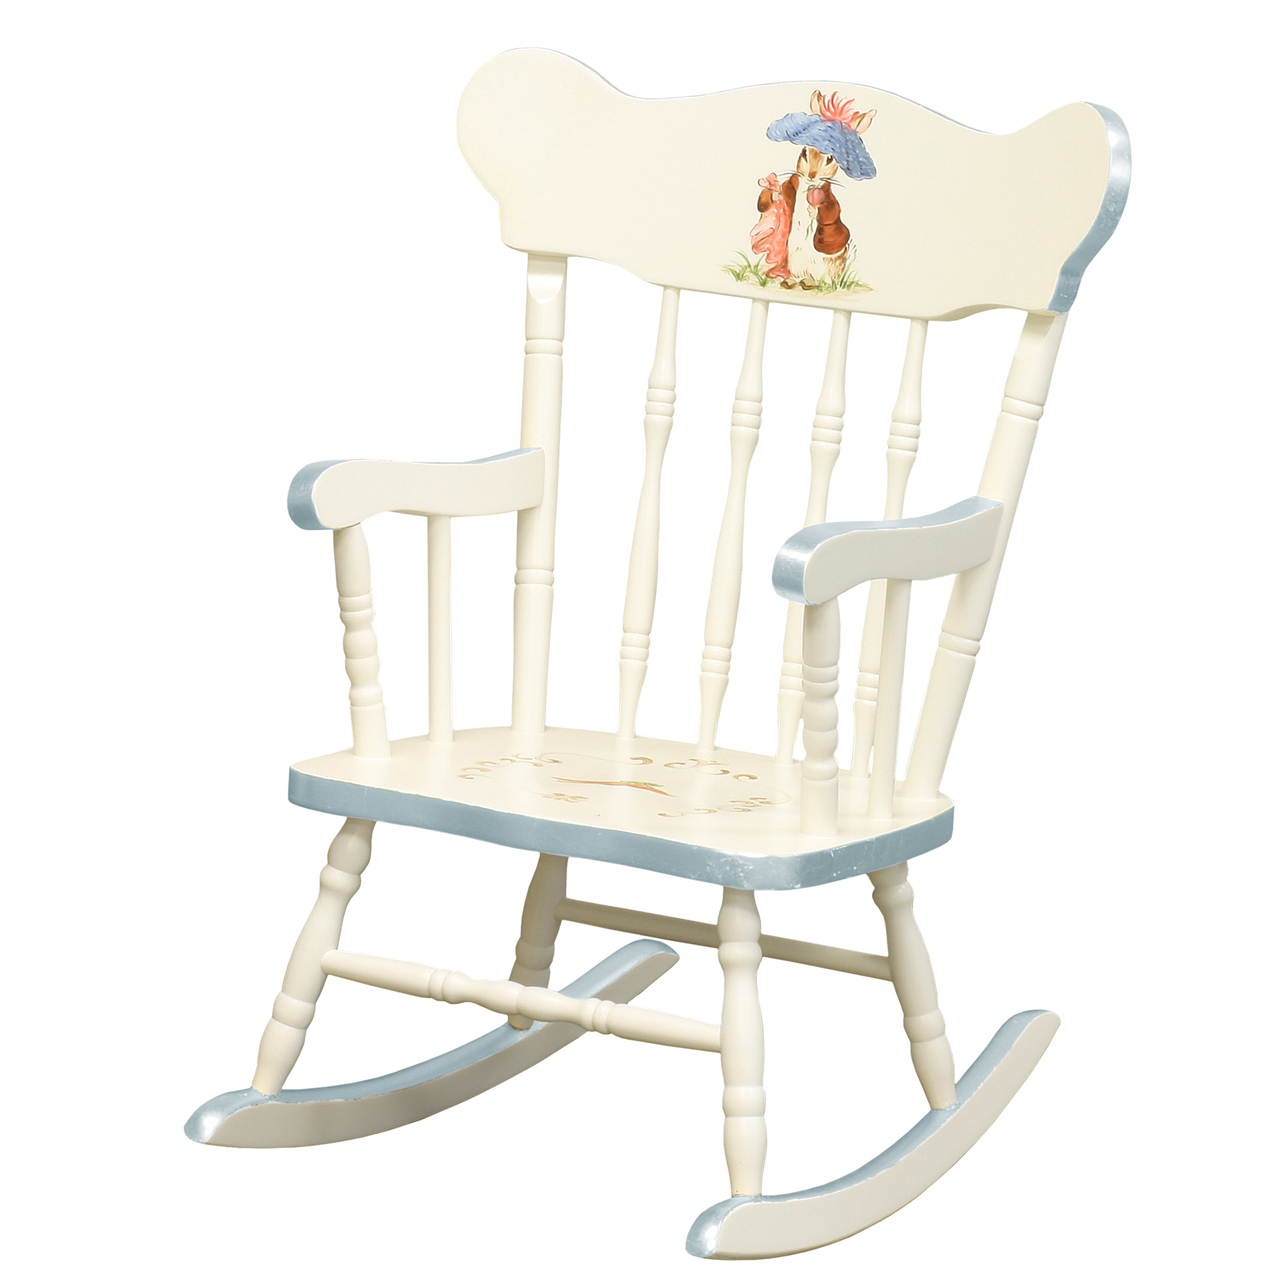 Childs Rocking Chair Antico White Classic Enchanted Forest